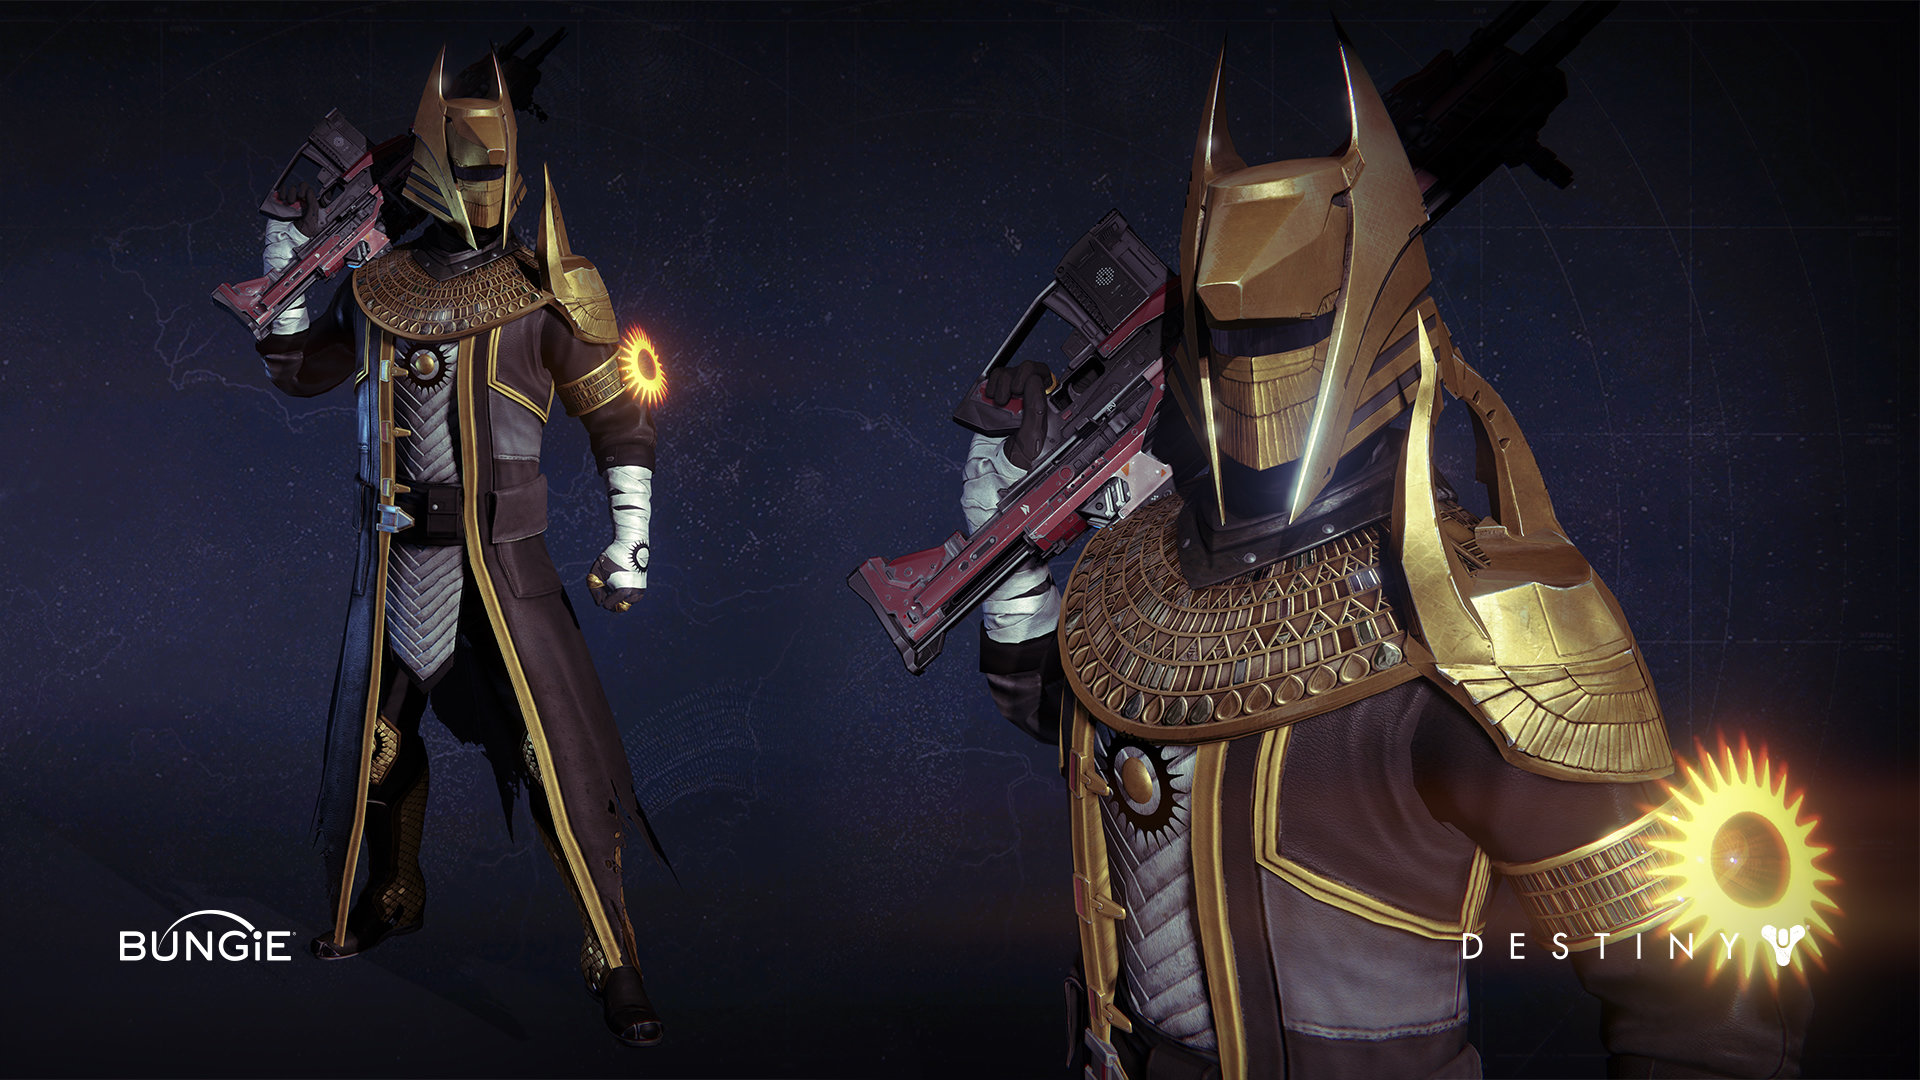 Can we have Old Destiny 1 Warlock Armor back please? : DestinyTheGame